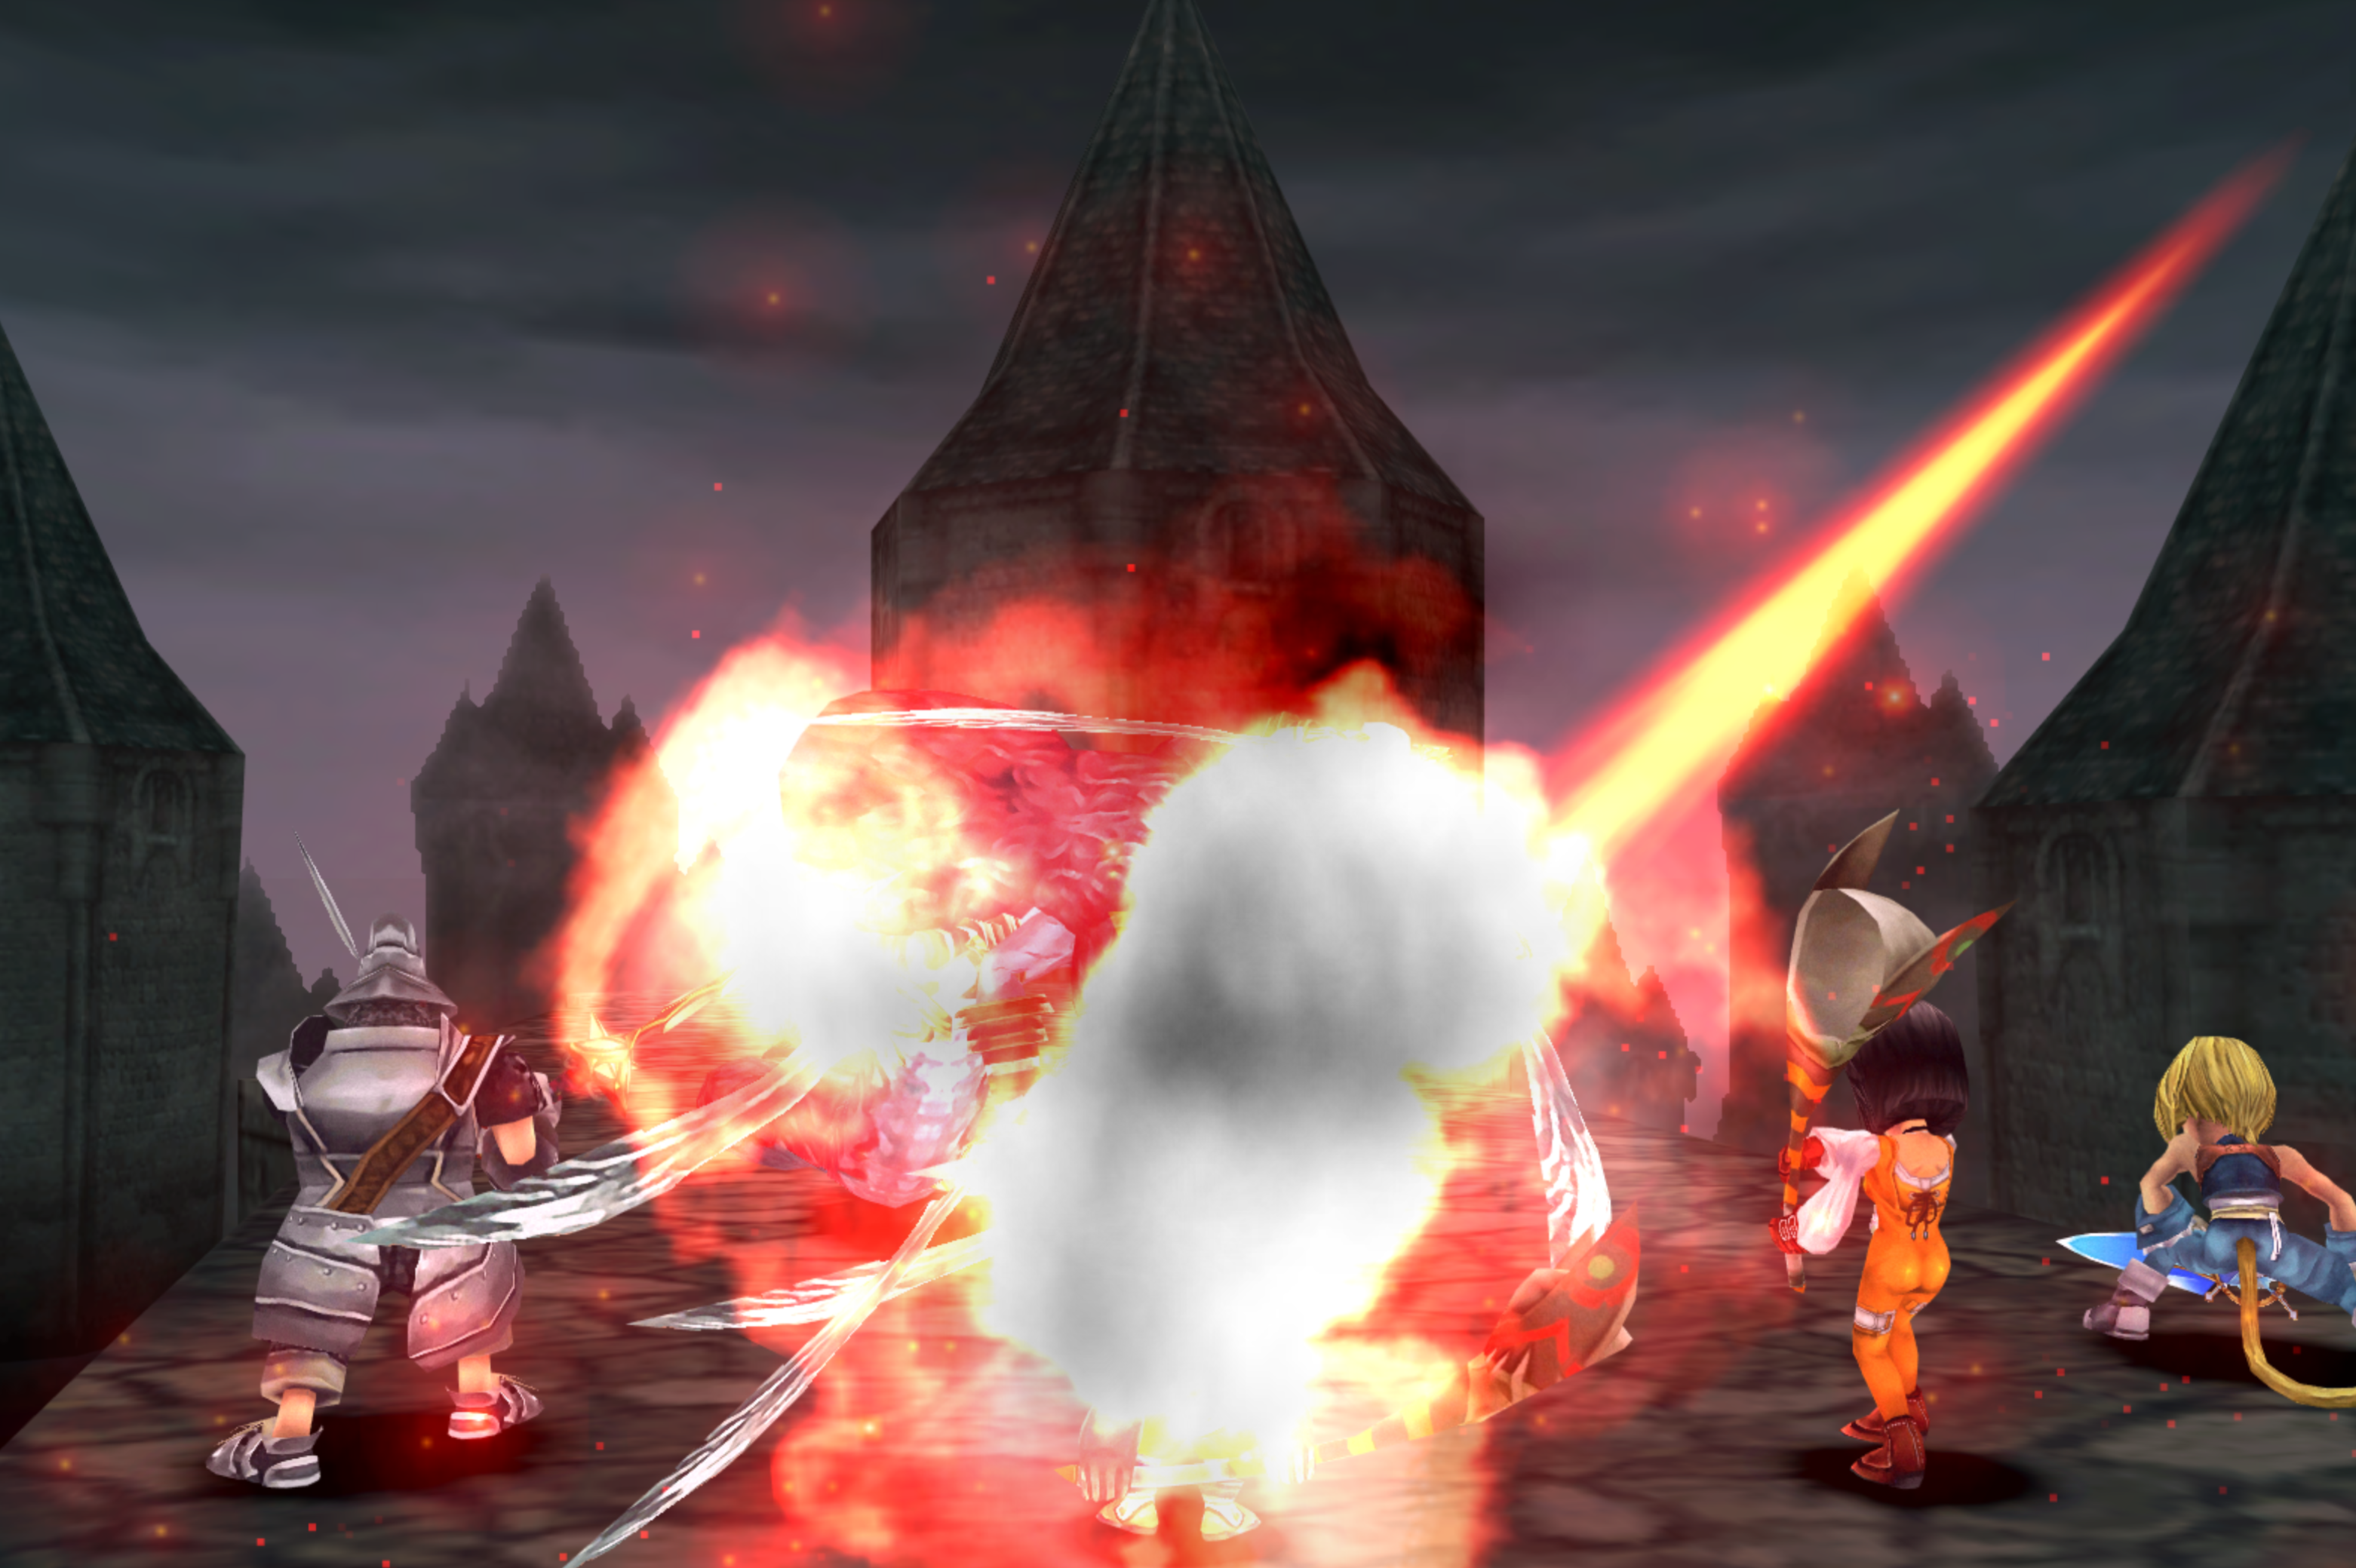 File:FFIX Flame Slash.png